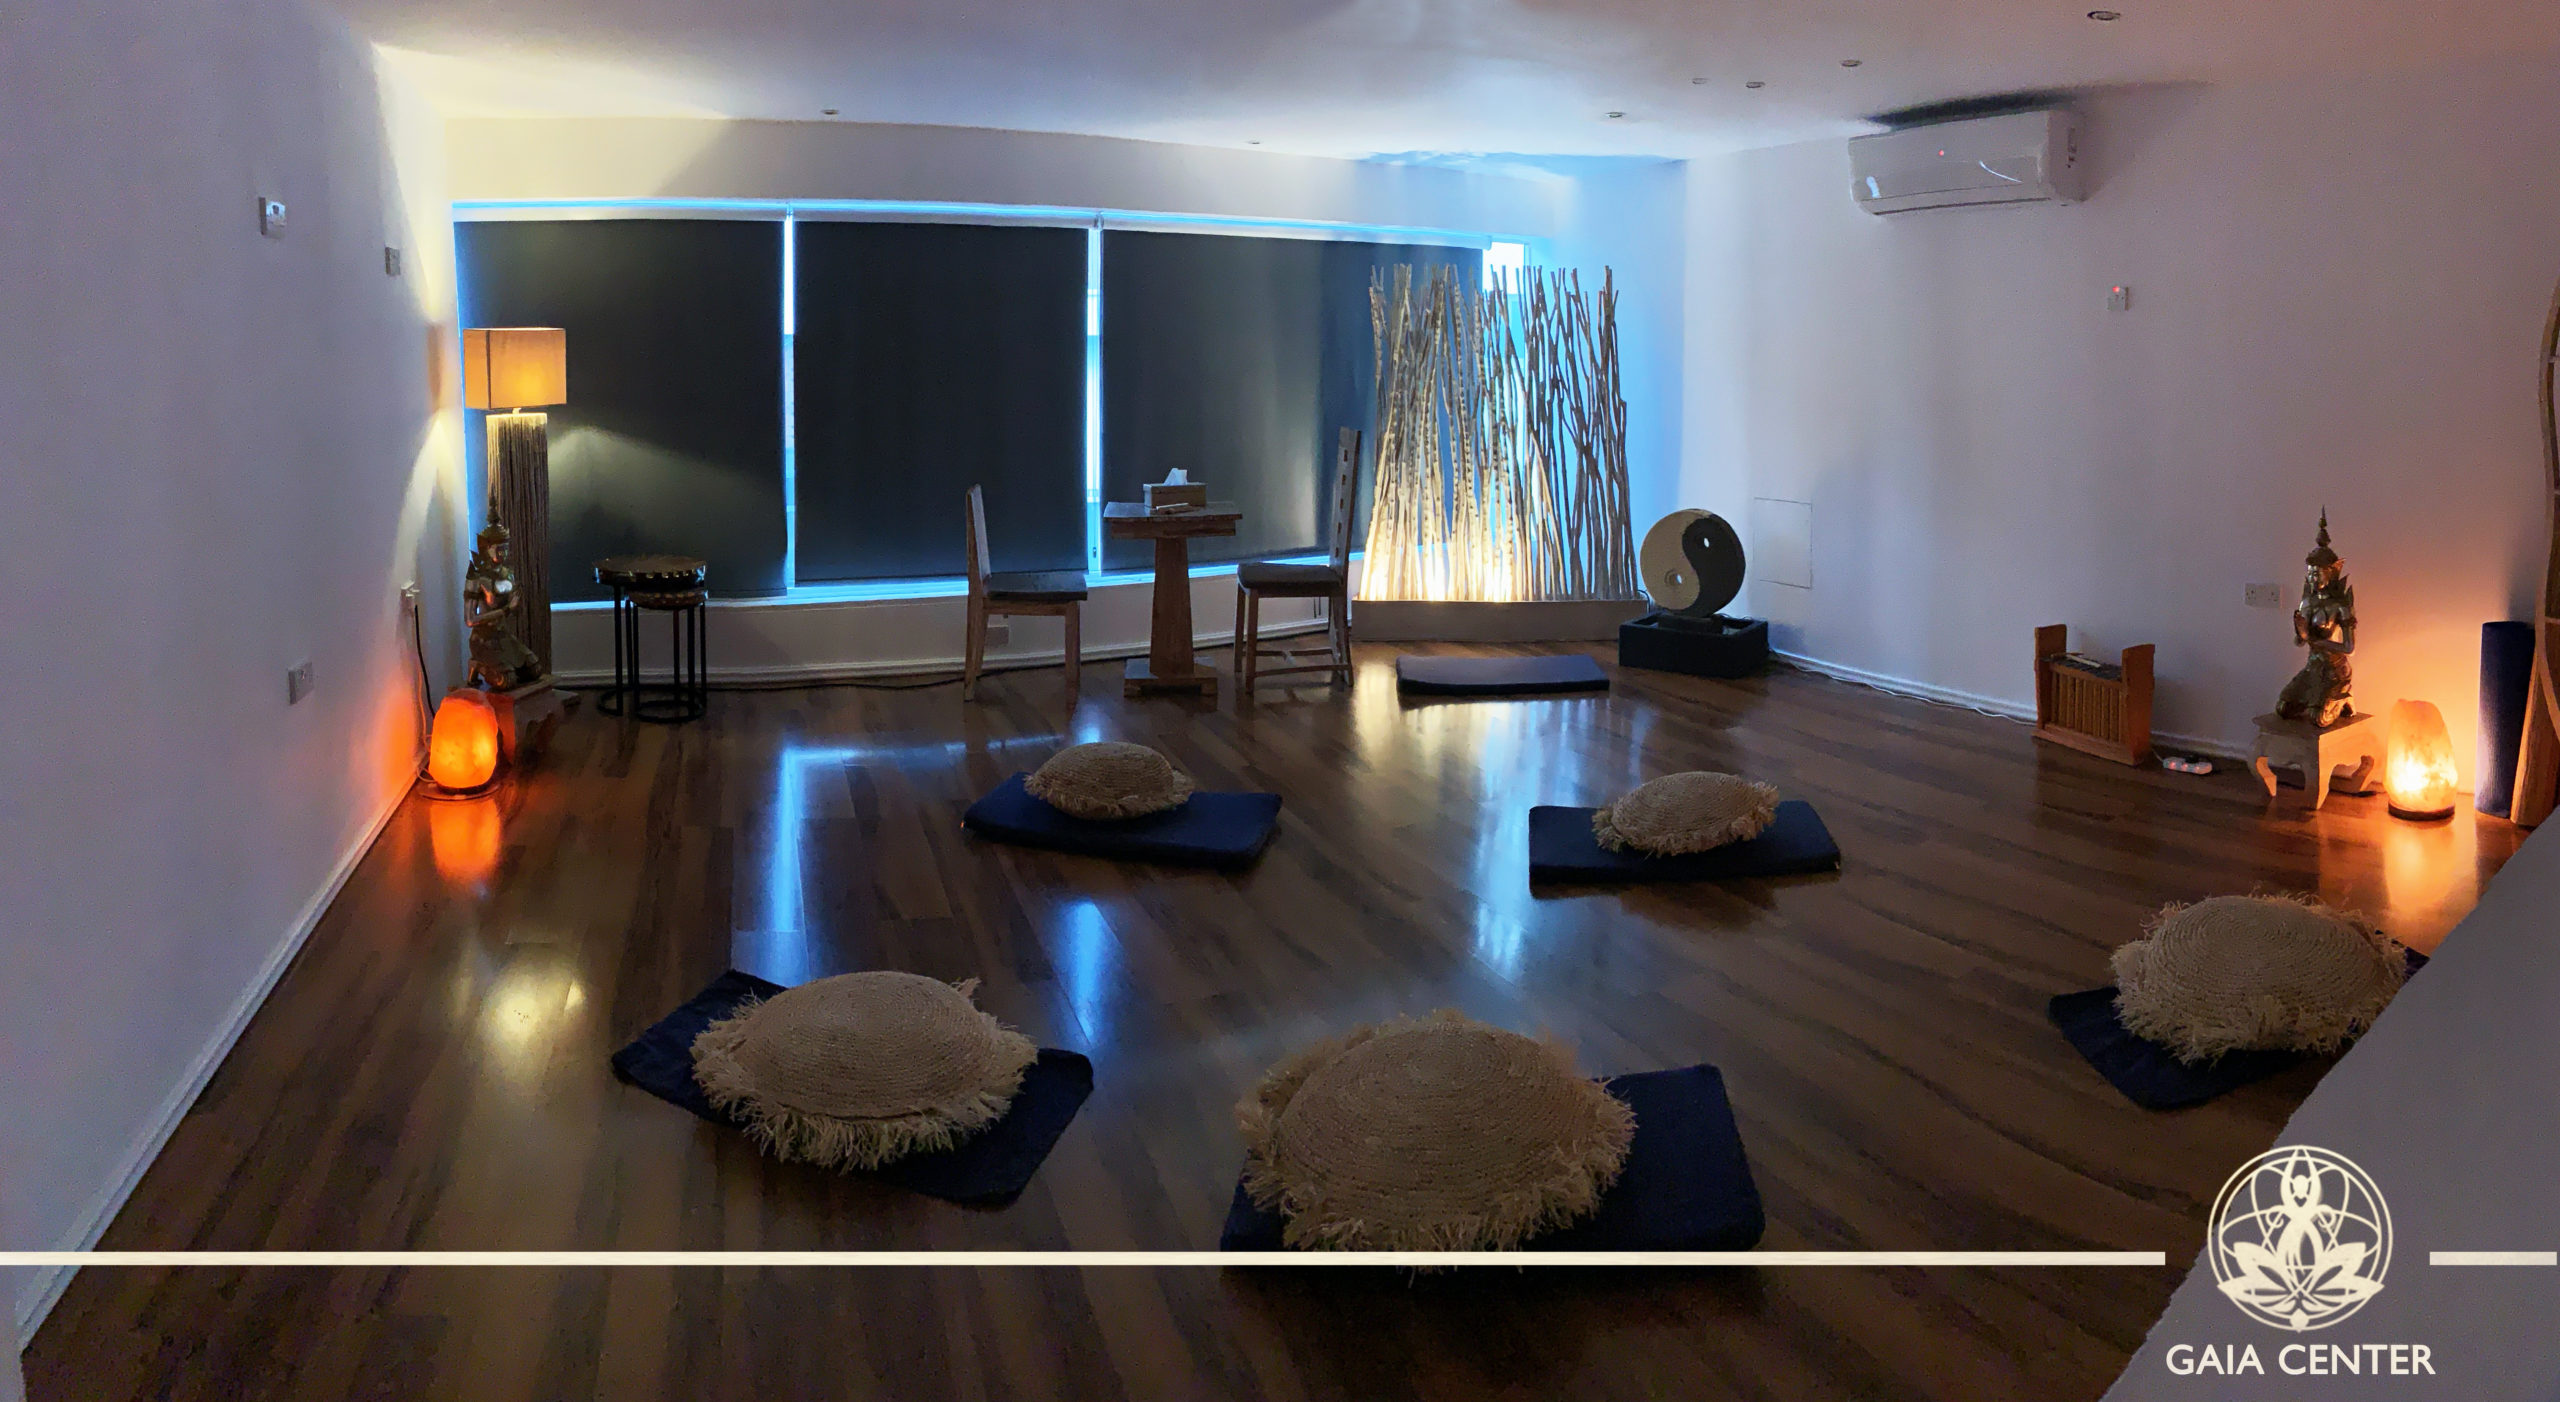 Meditation healing space for lectures & workshops. Individual therapies and consultations. Cacao Ceremony and Sound healing sacred healing space. Gaia Center in Cyprus.